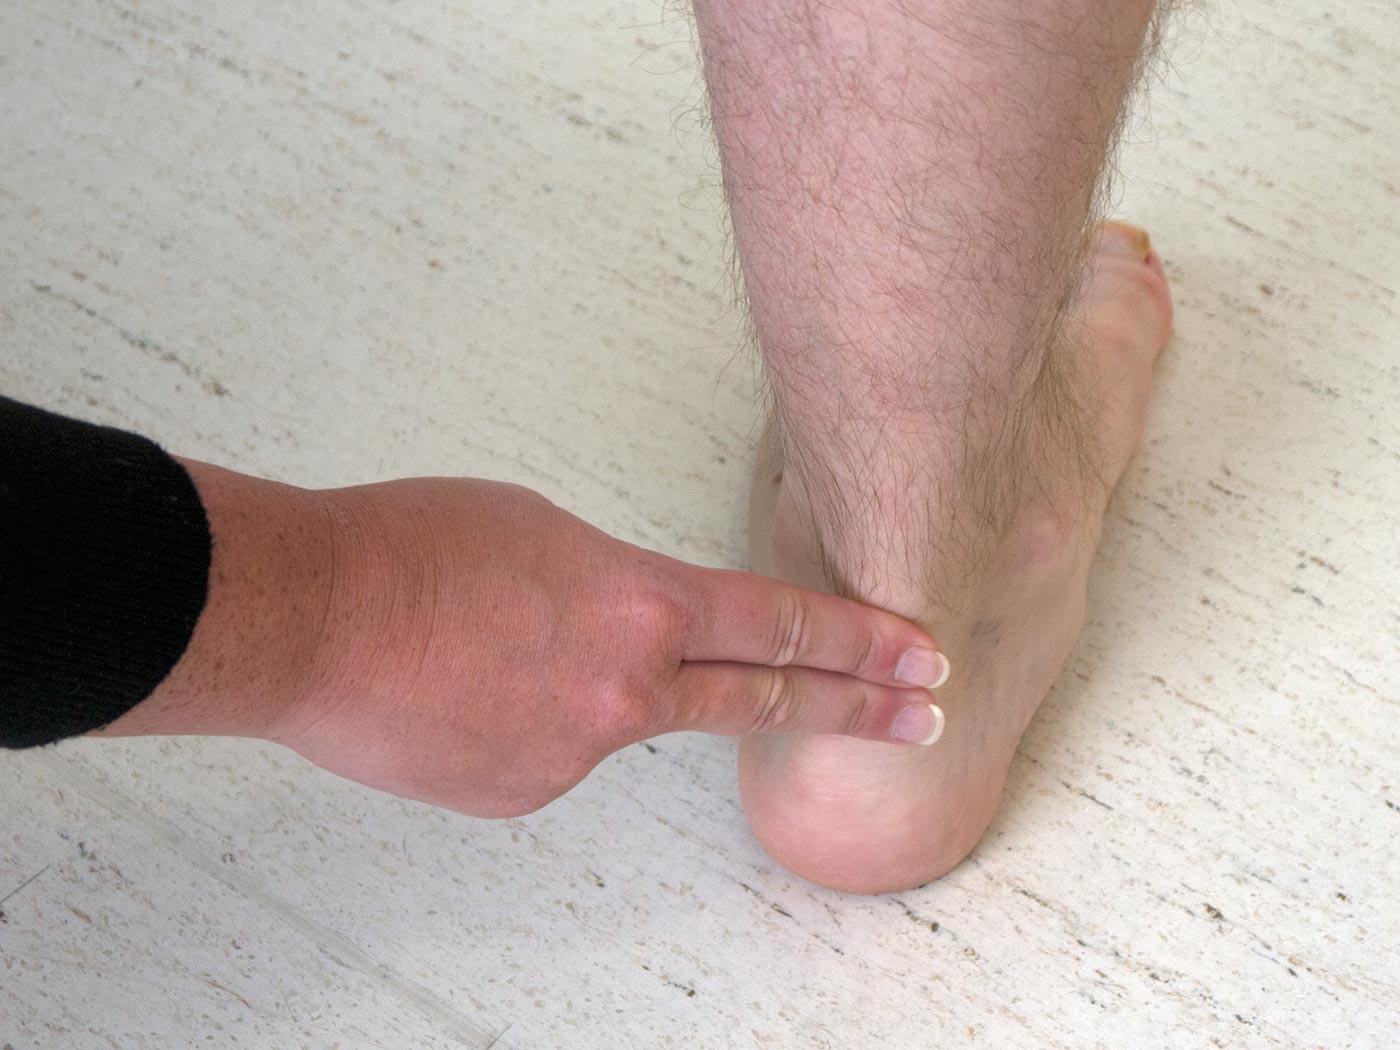 Feel the Achilles tendon for any thickening or swelling